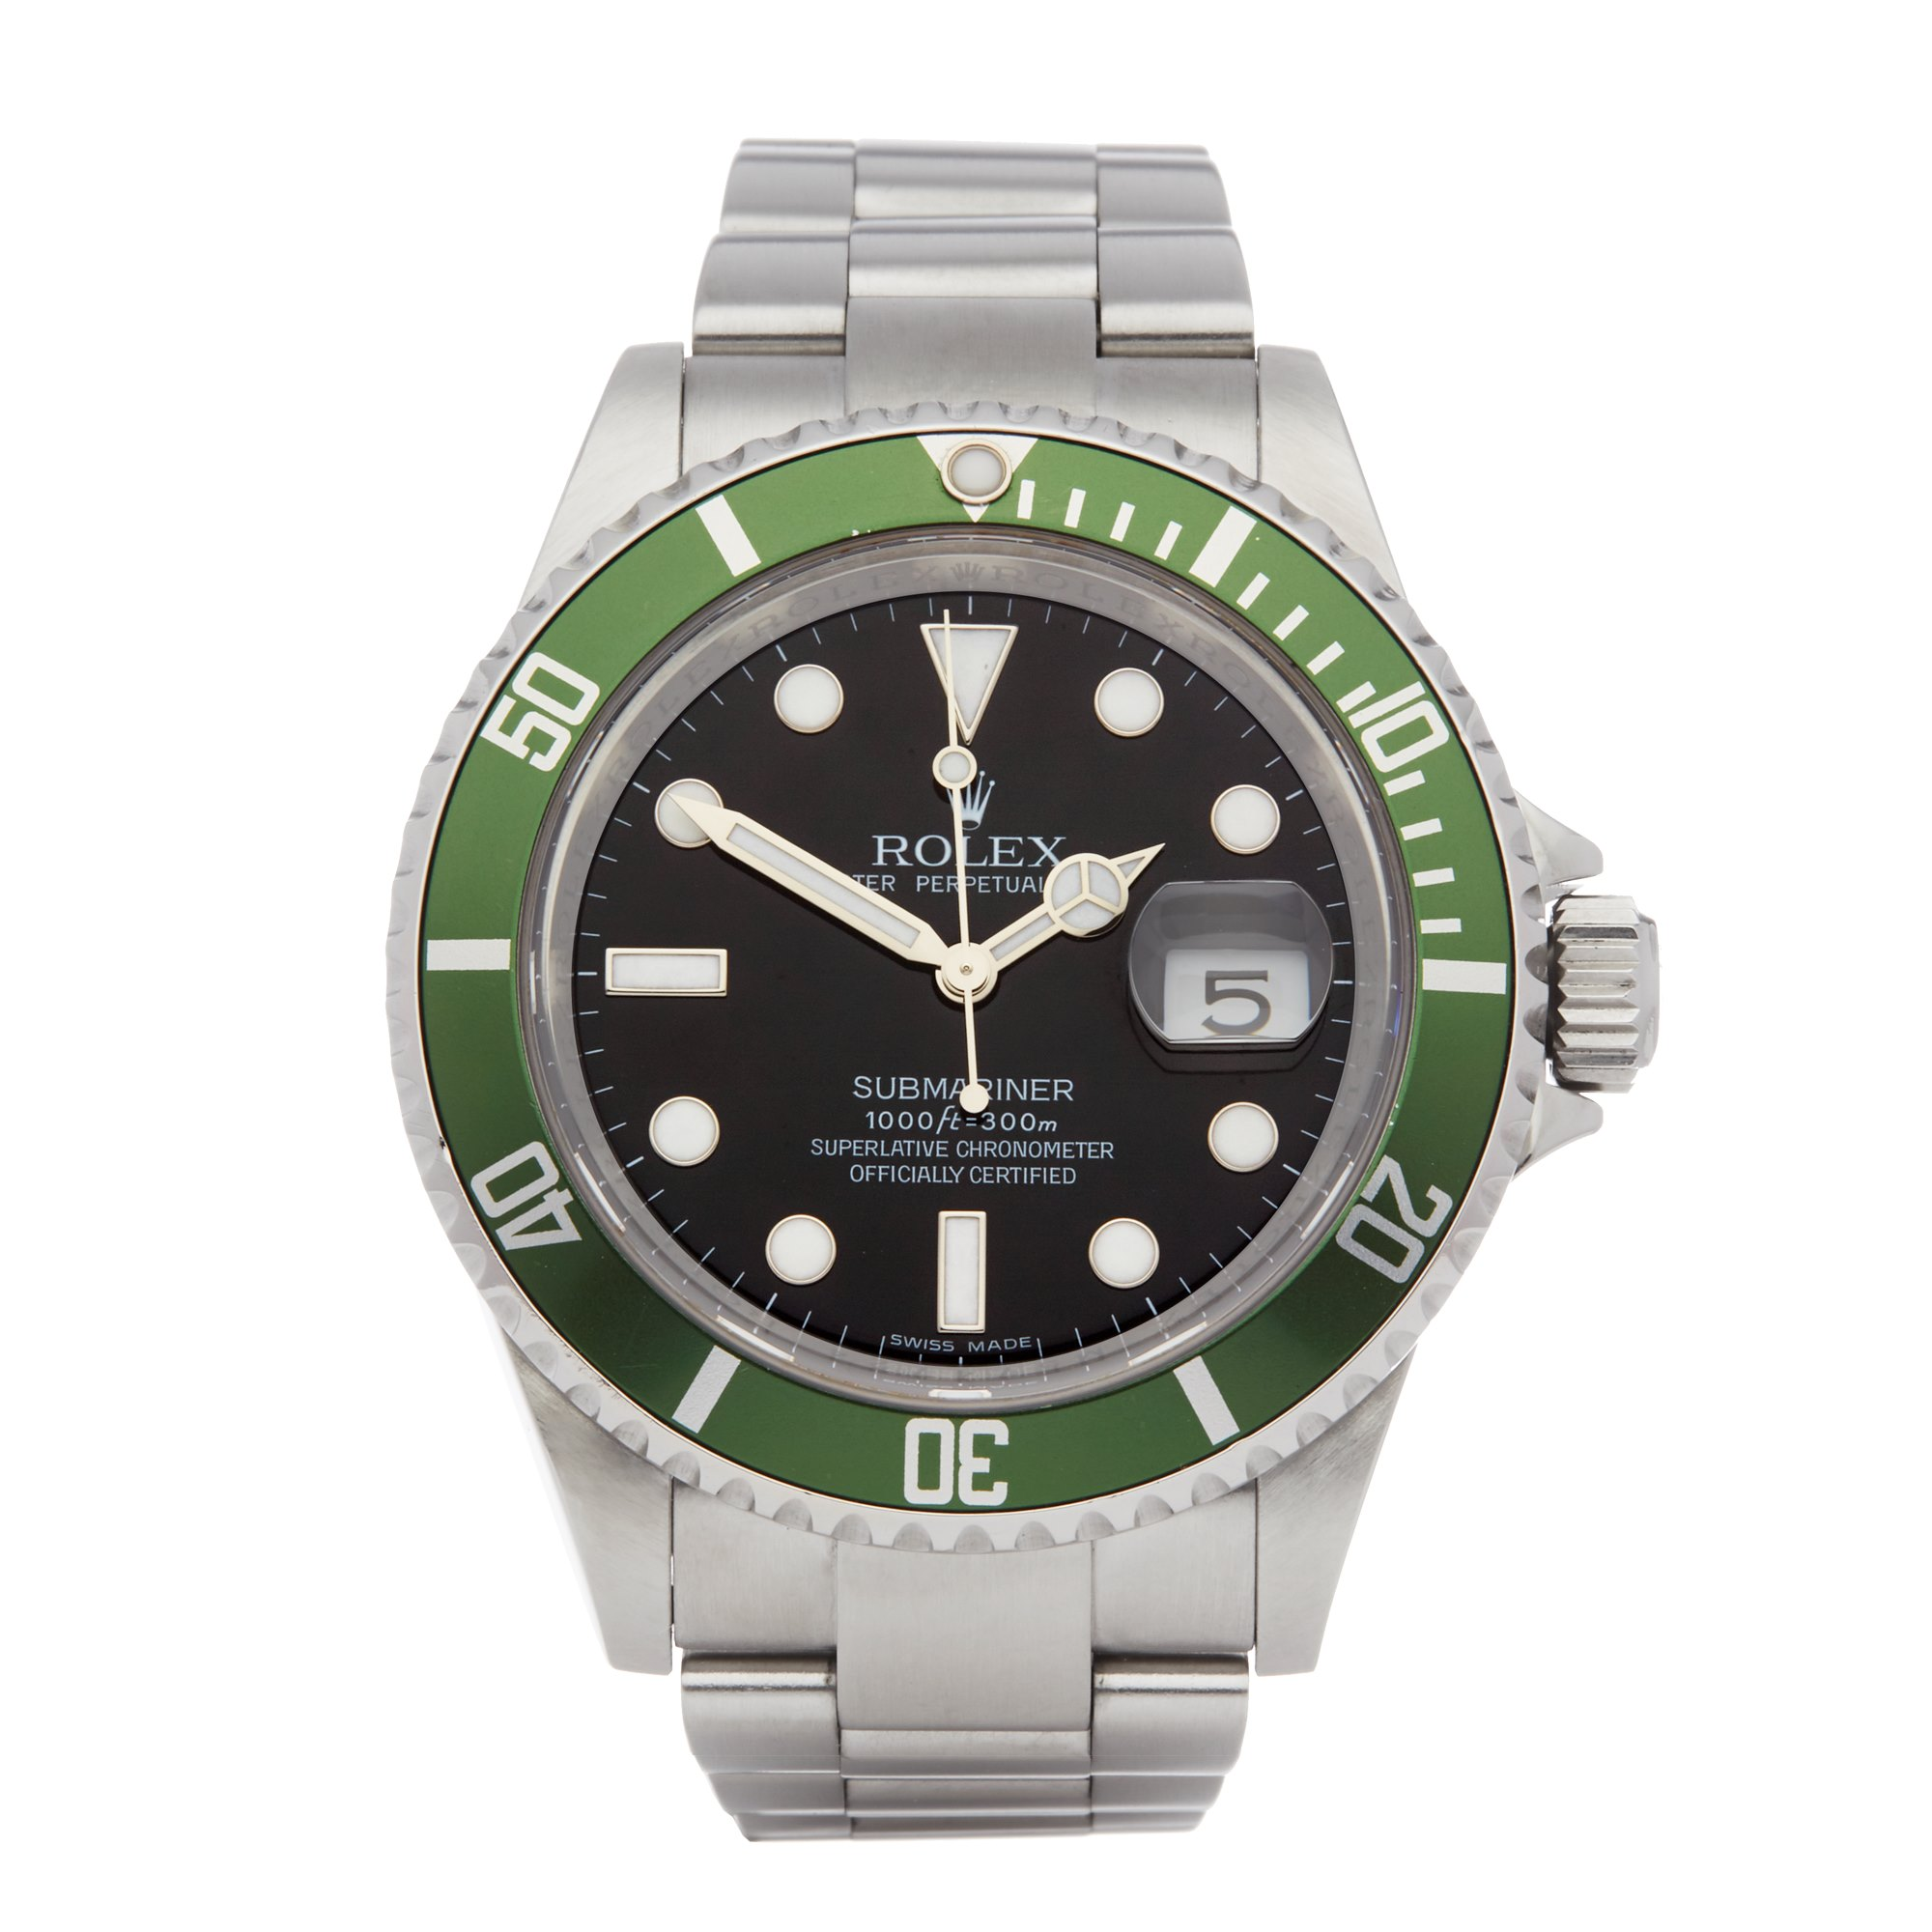 Rolex Submariner Date Kermit Stainless Steel 16610LV